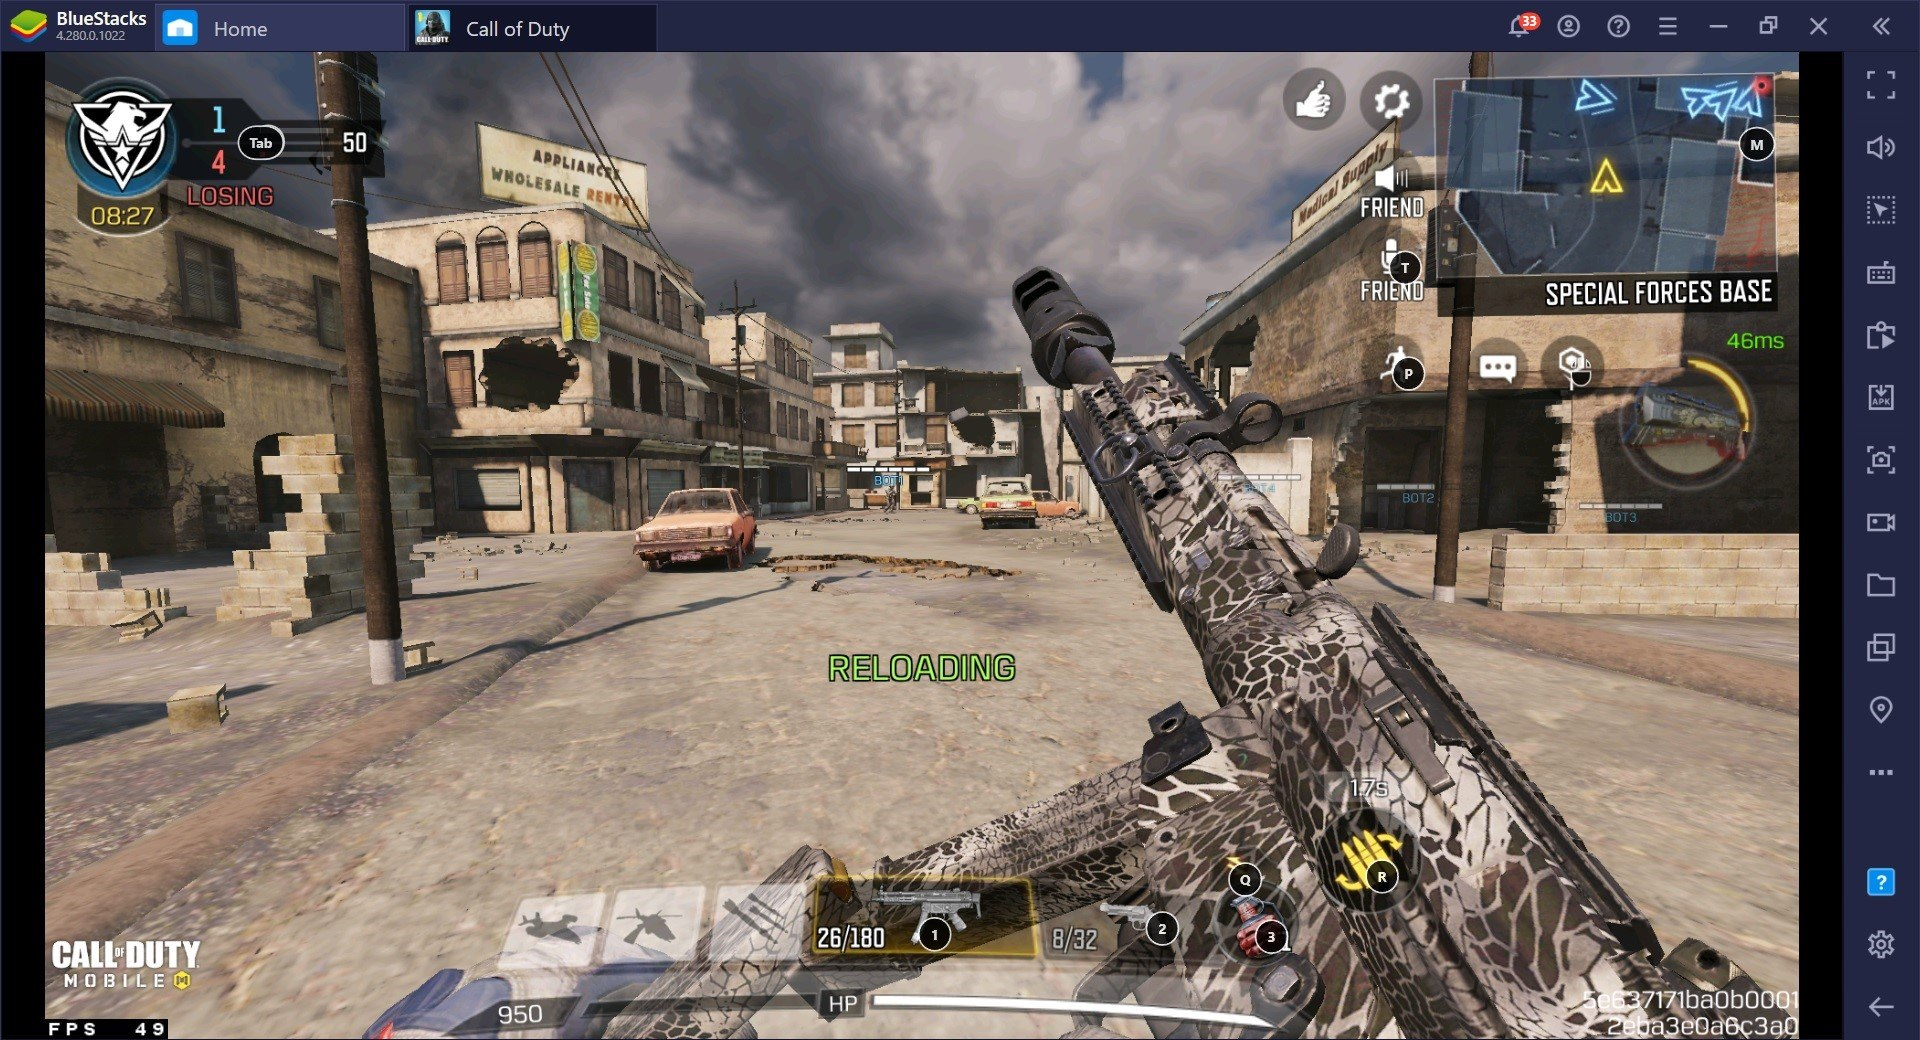 Call of Duty: Mobile QQ9 Weapon Guide – The SMG That Claps Too Hard